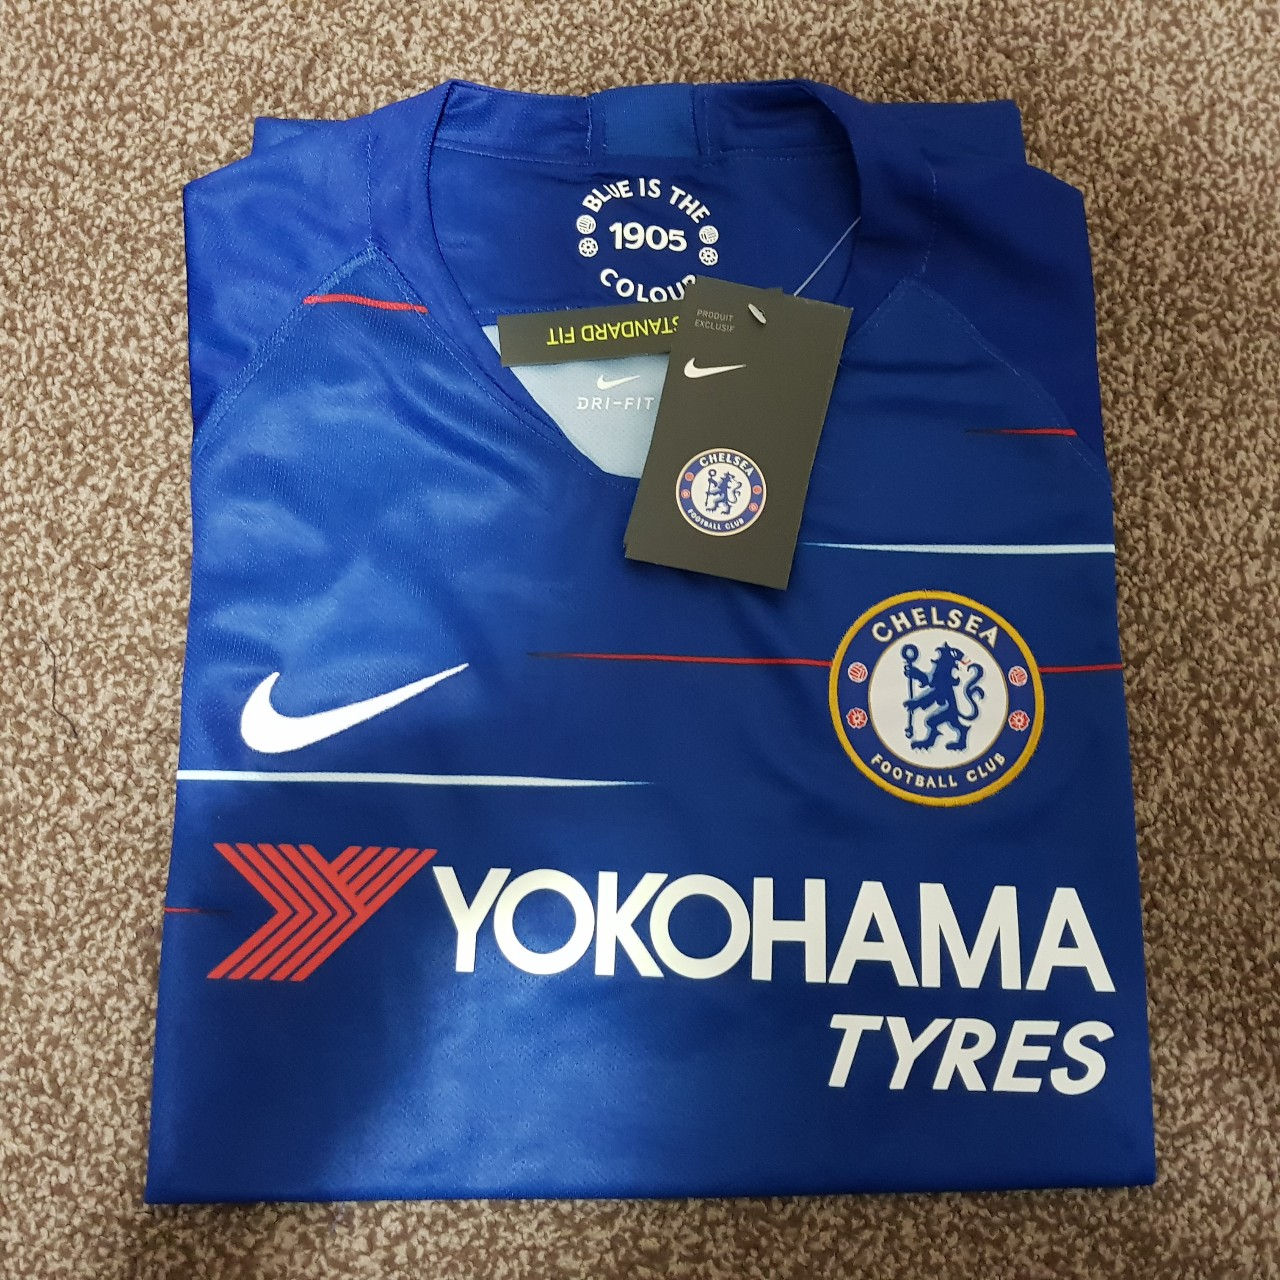 new concept 71209 11939 Chelsea FC 2018/2019 Home kit/ jersey + Sealed with... - Depop